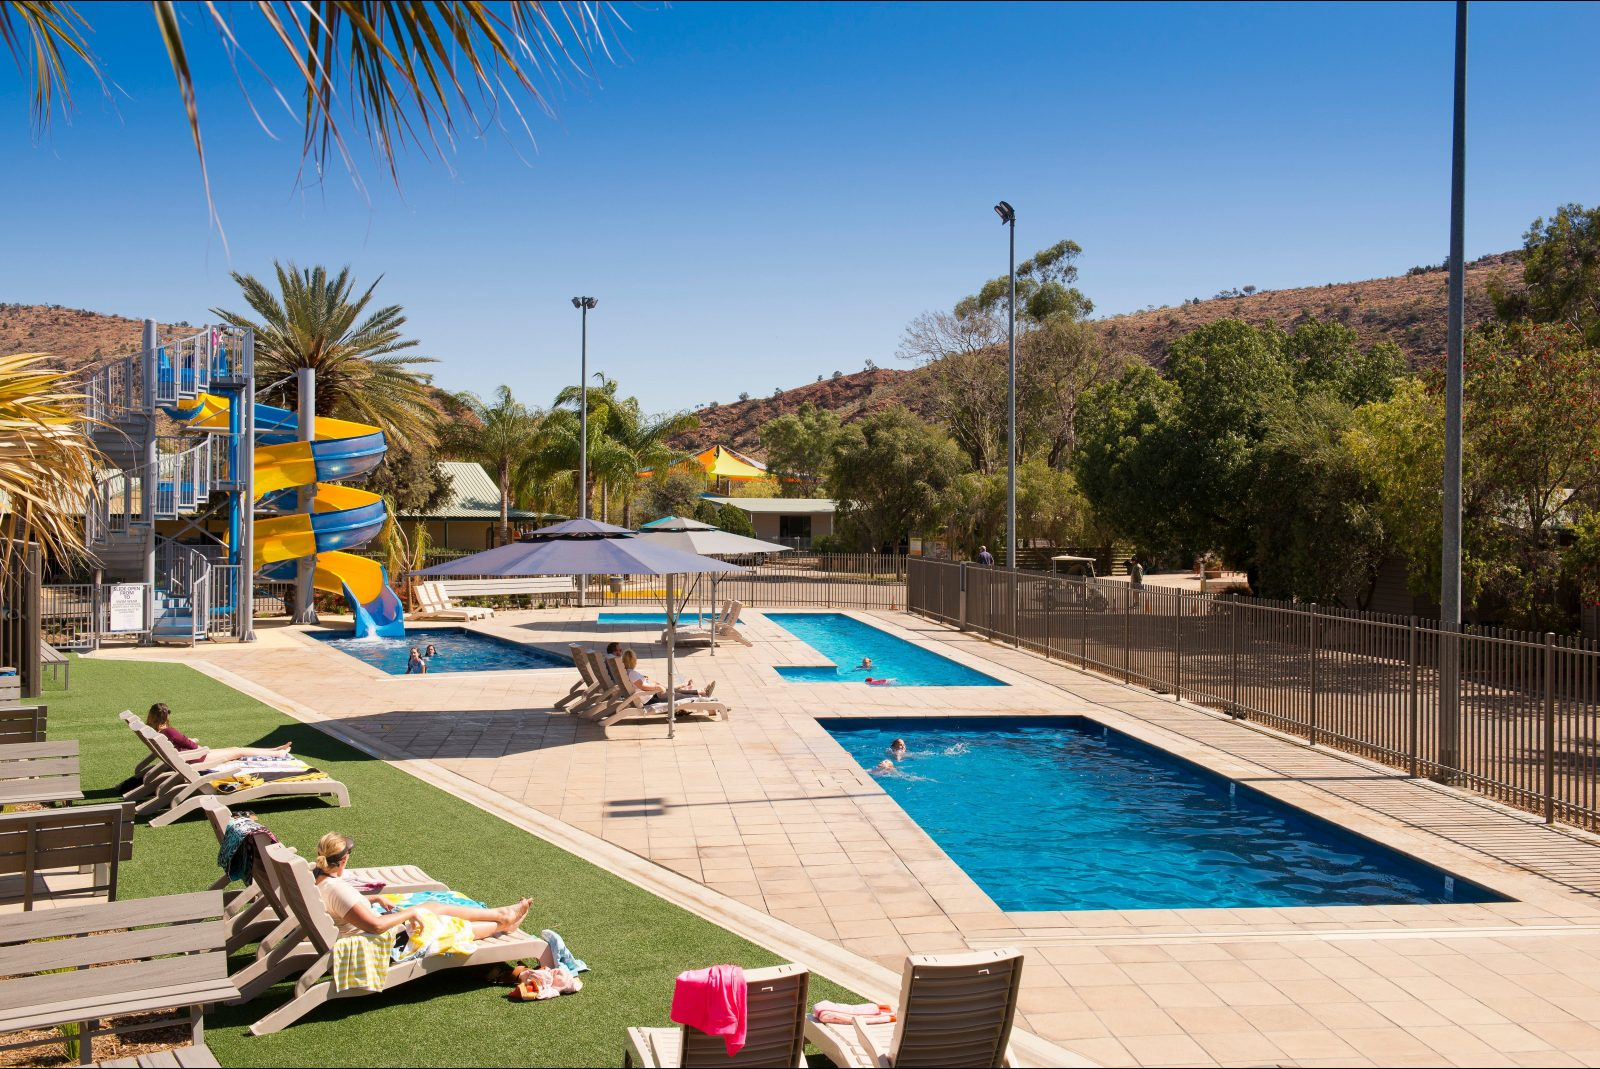 come and enjoy a dip in our heated pools at BIG4 MacDonnell Range Holiday Park